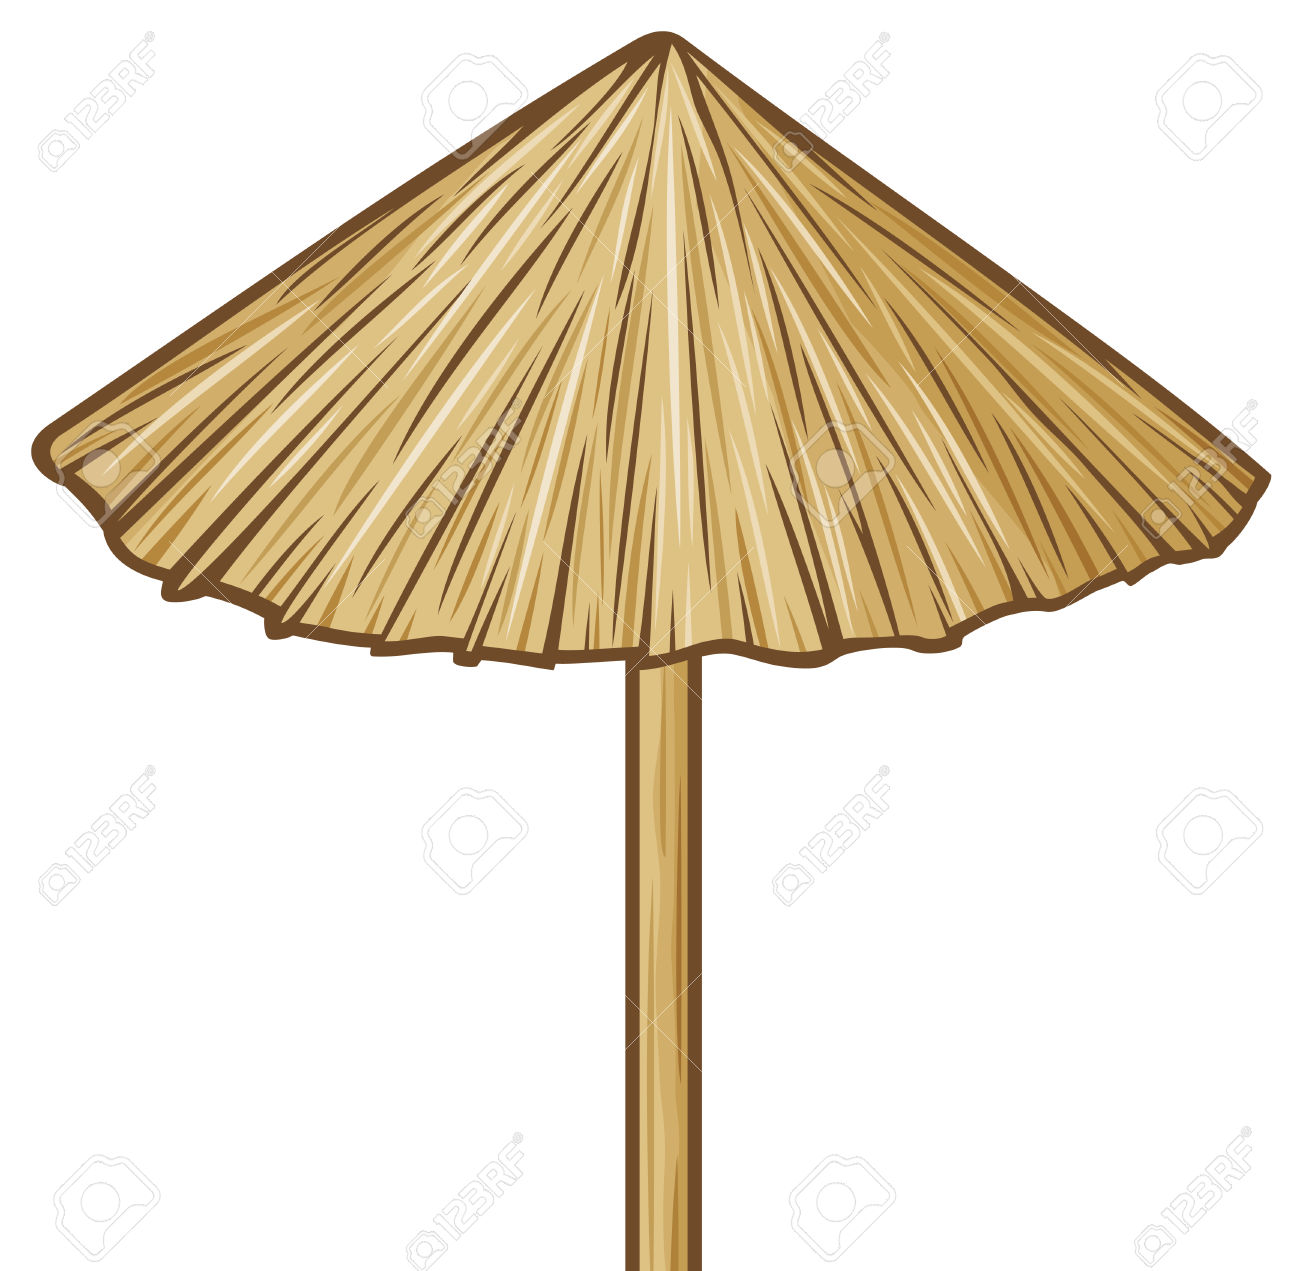 Straw Umbrella Wooden Sunshade, Beach Umbrella Royalty Free.